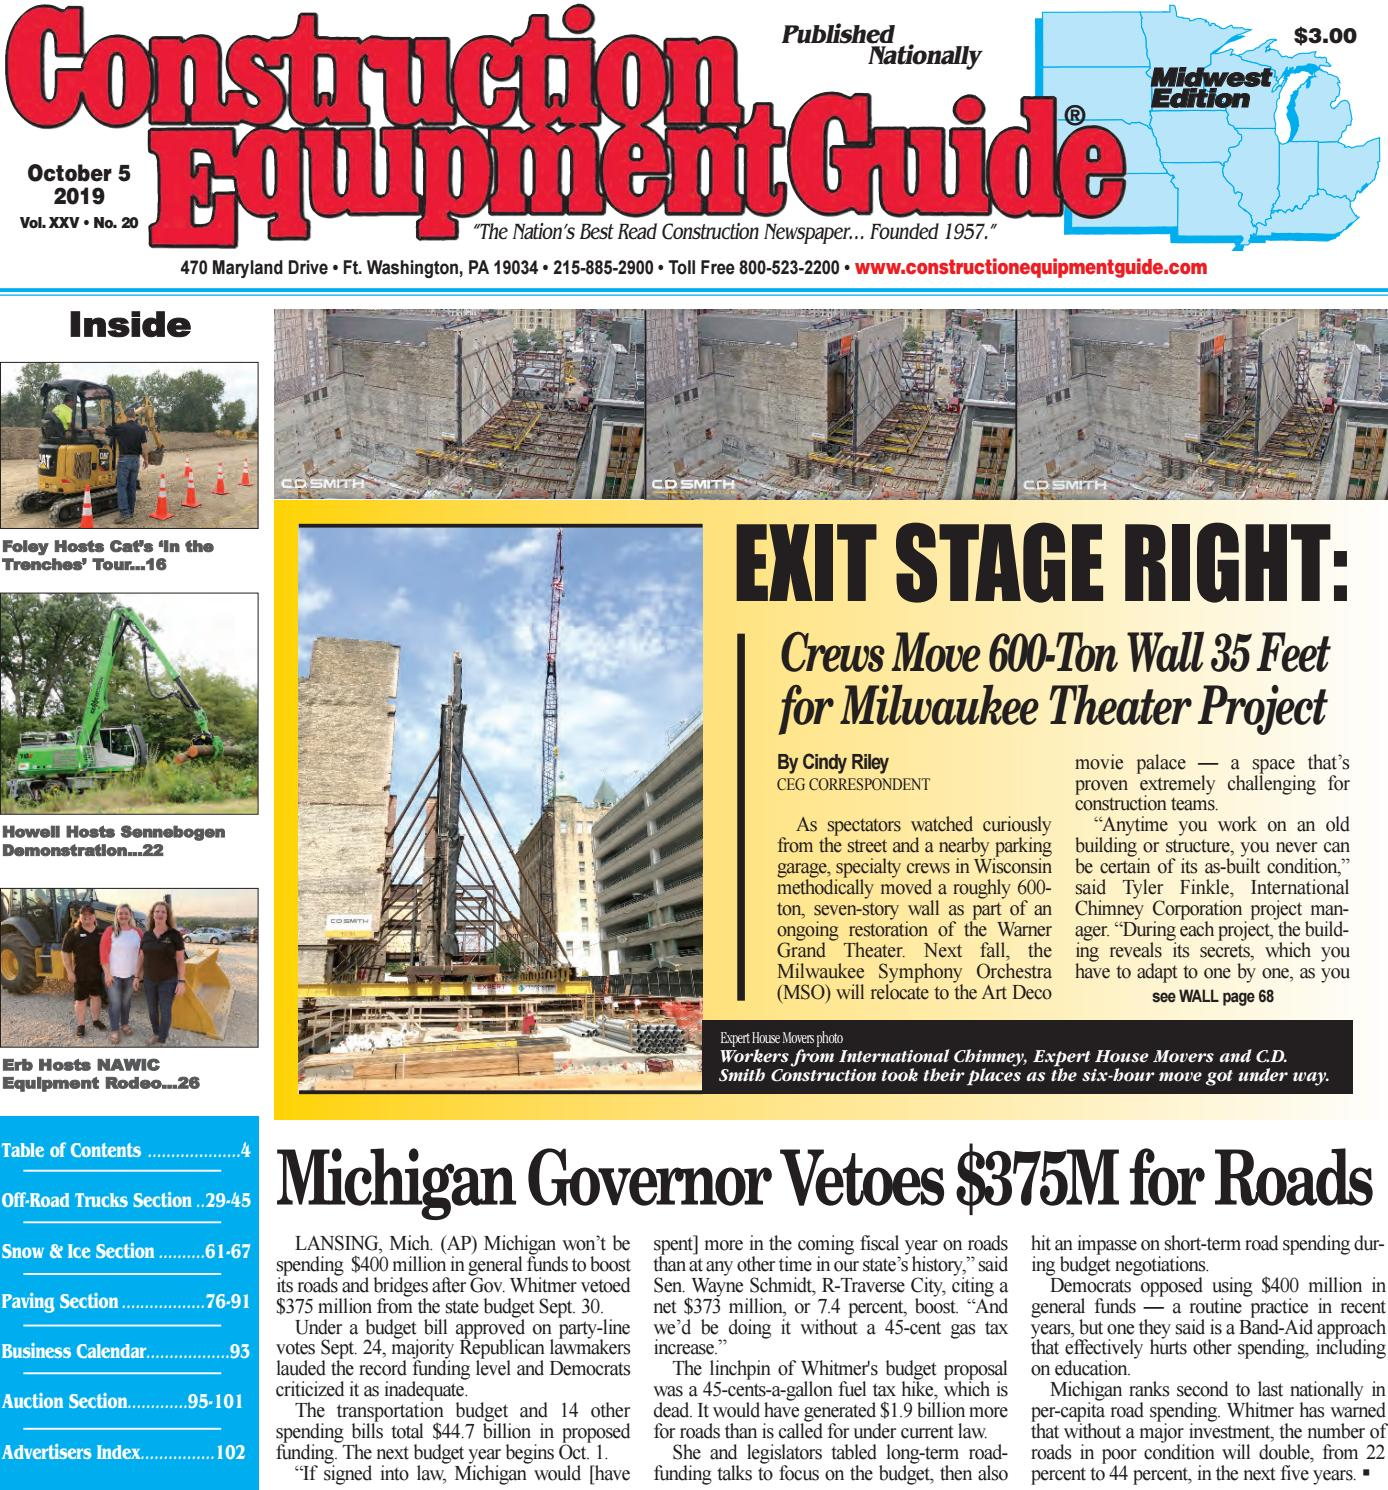 Midwest 20 October 5, 2019 by Construction Equipment Guide - issuu